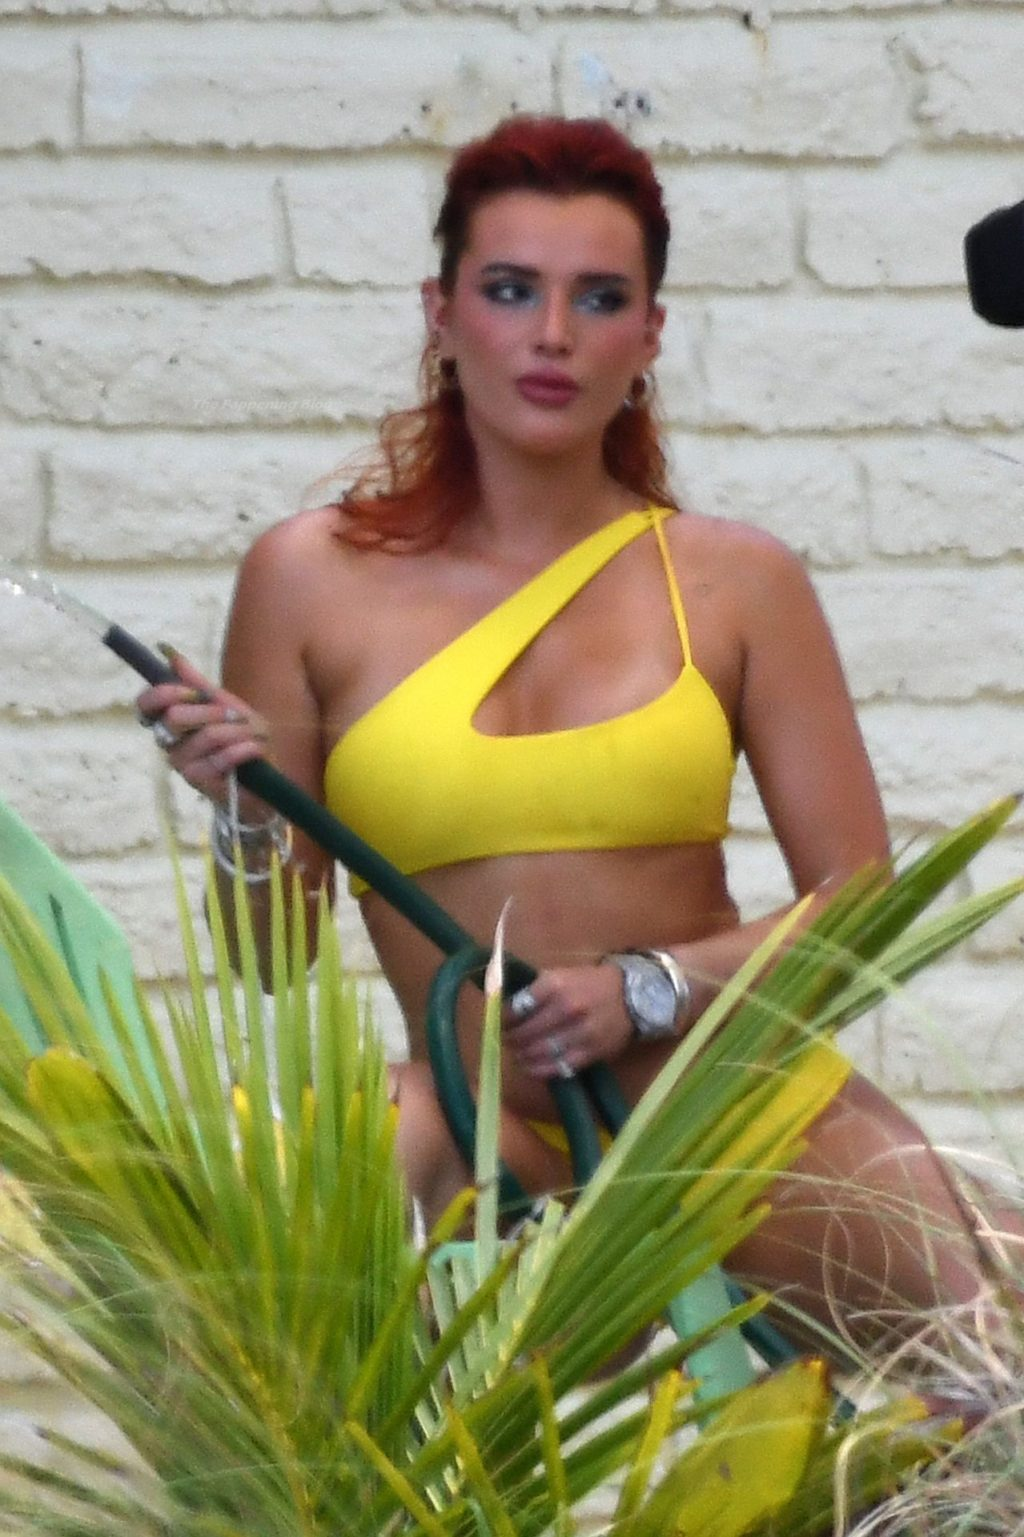 Bella Thorne Poses Seductively with a Water Hose During a Shoot in Miami (80 Photos)